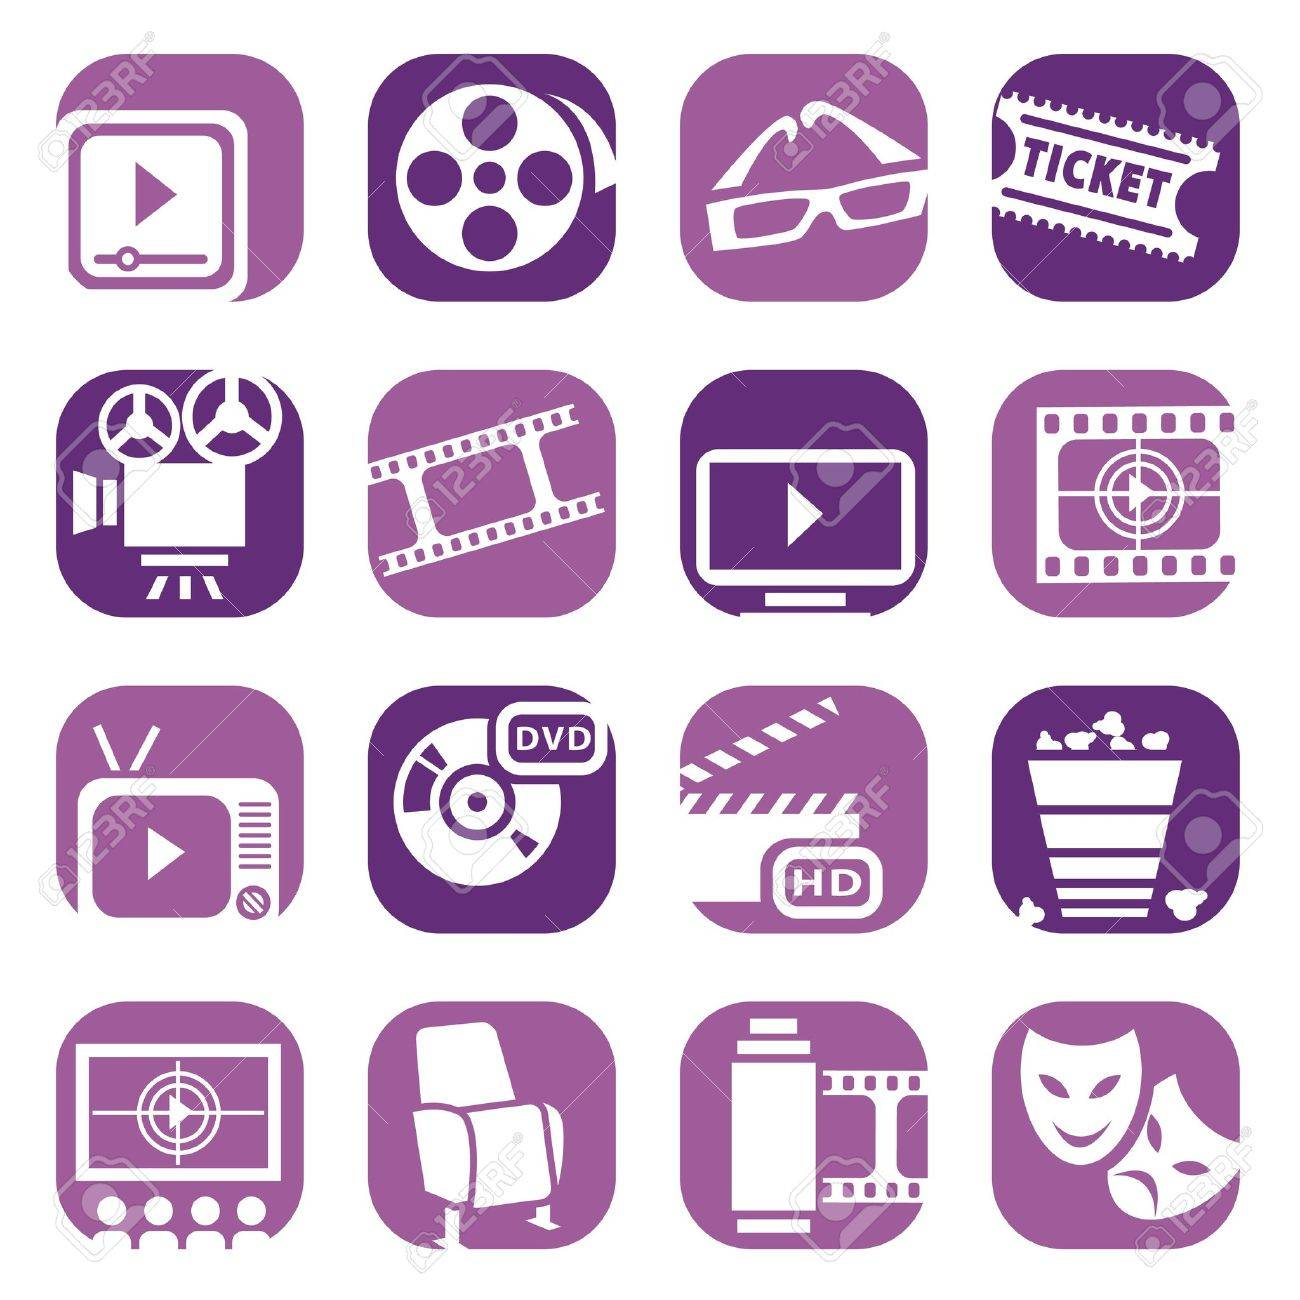 Color Cinema Icons Set Created For Mobile, Web And Applications - 18842067